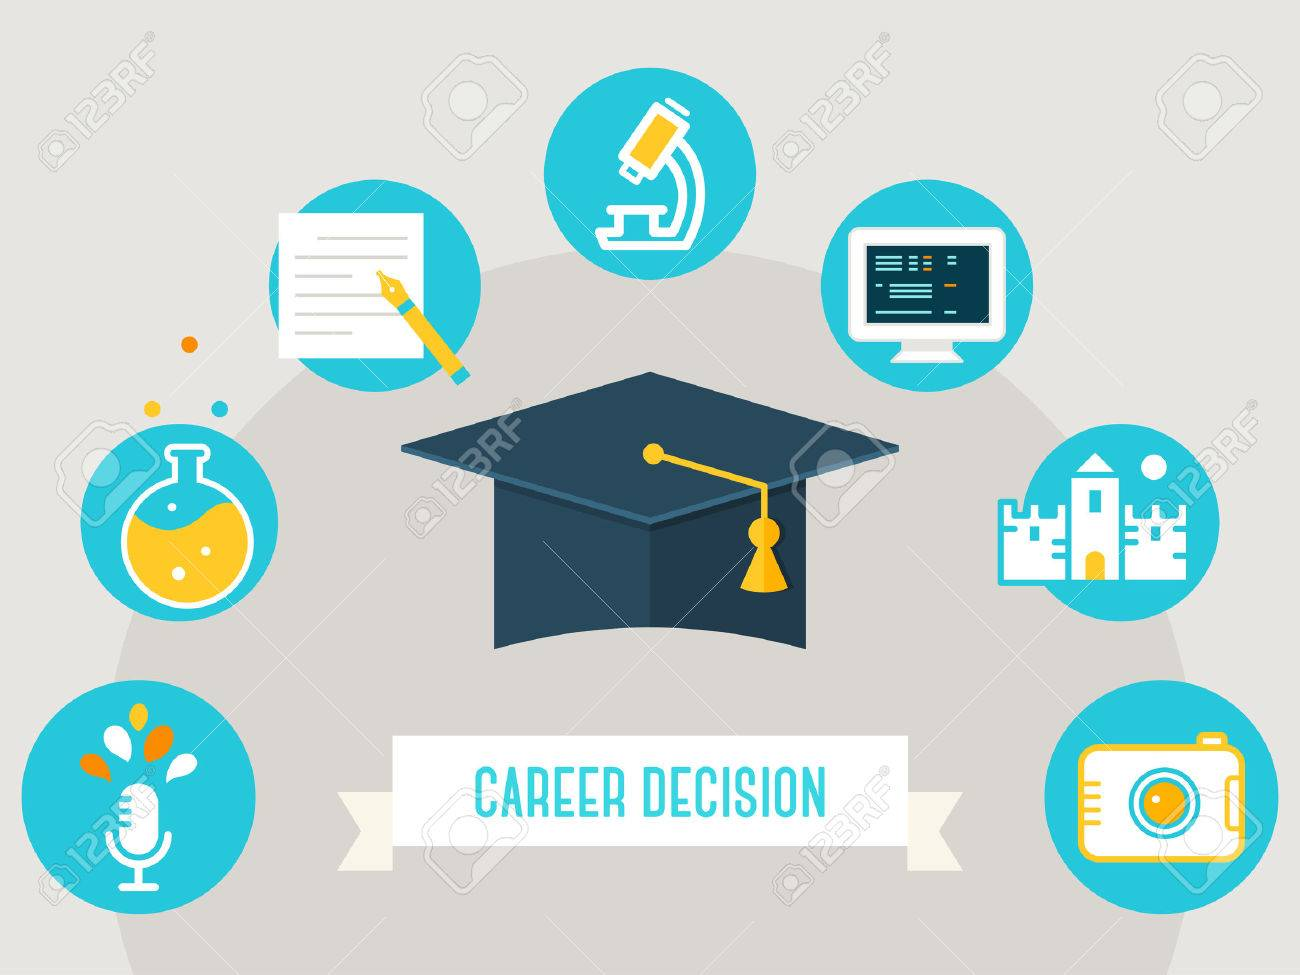 graduation cap surrounded by education icons and career decision graduation cap surrounded by education icons and career decision sign choosing a course occupation